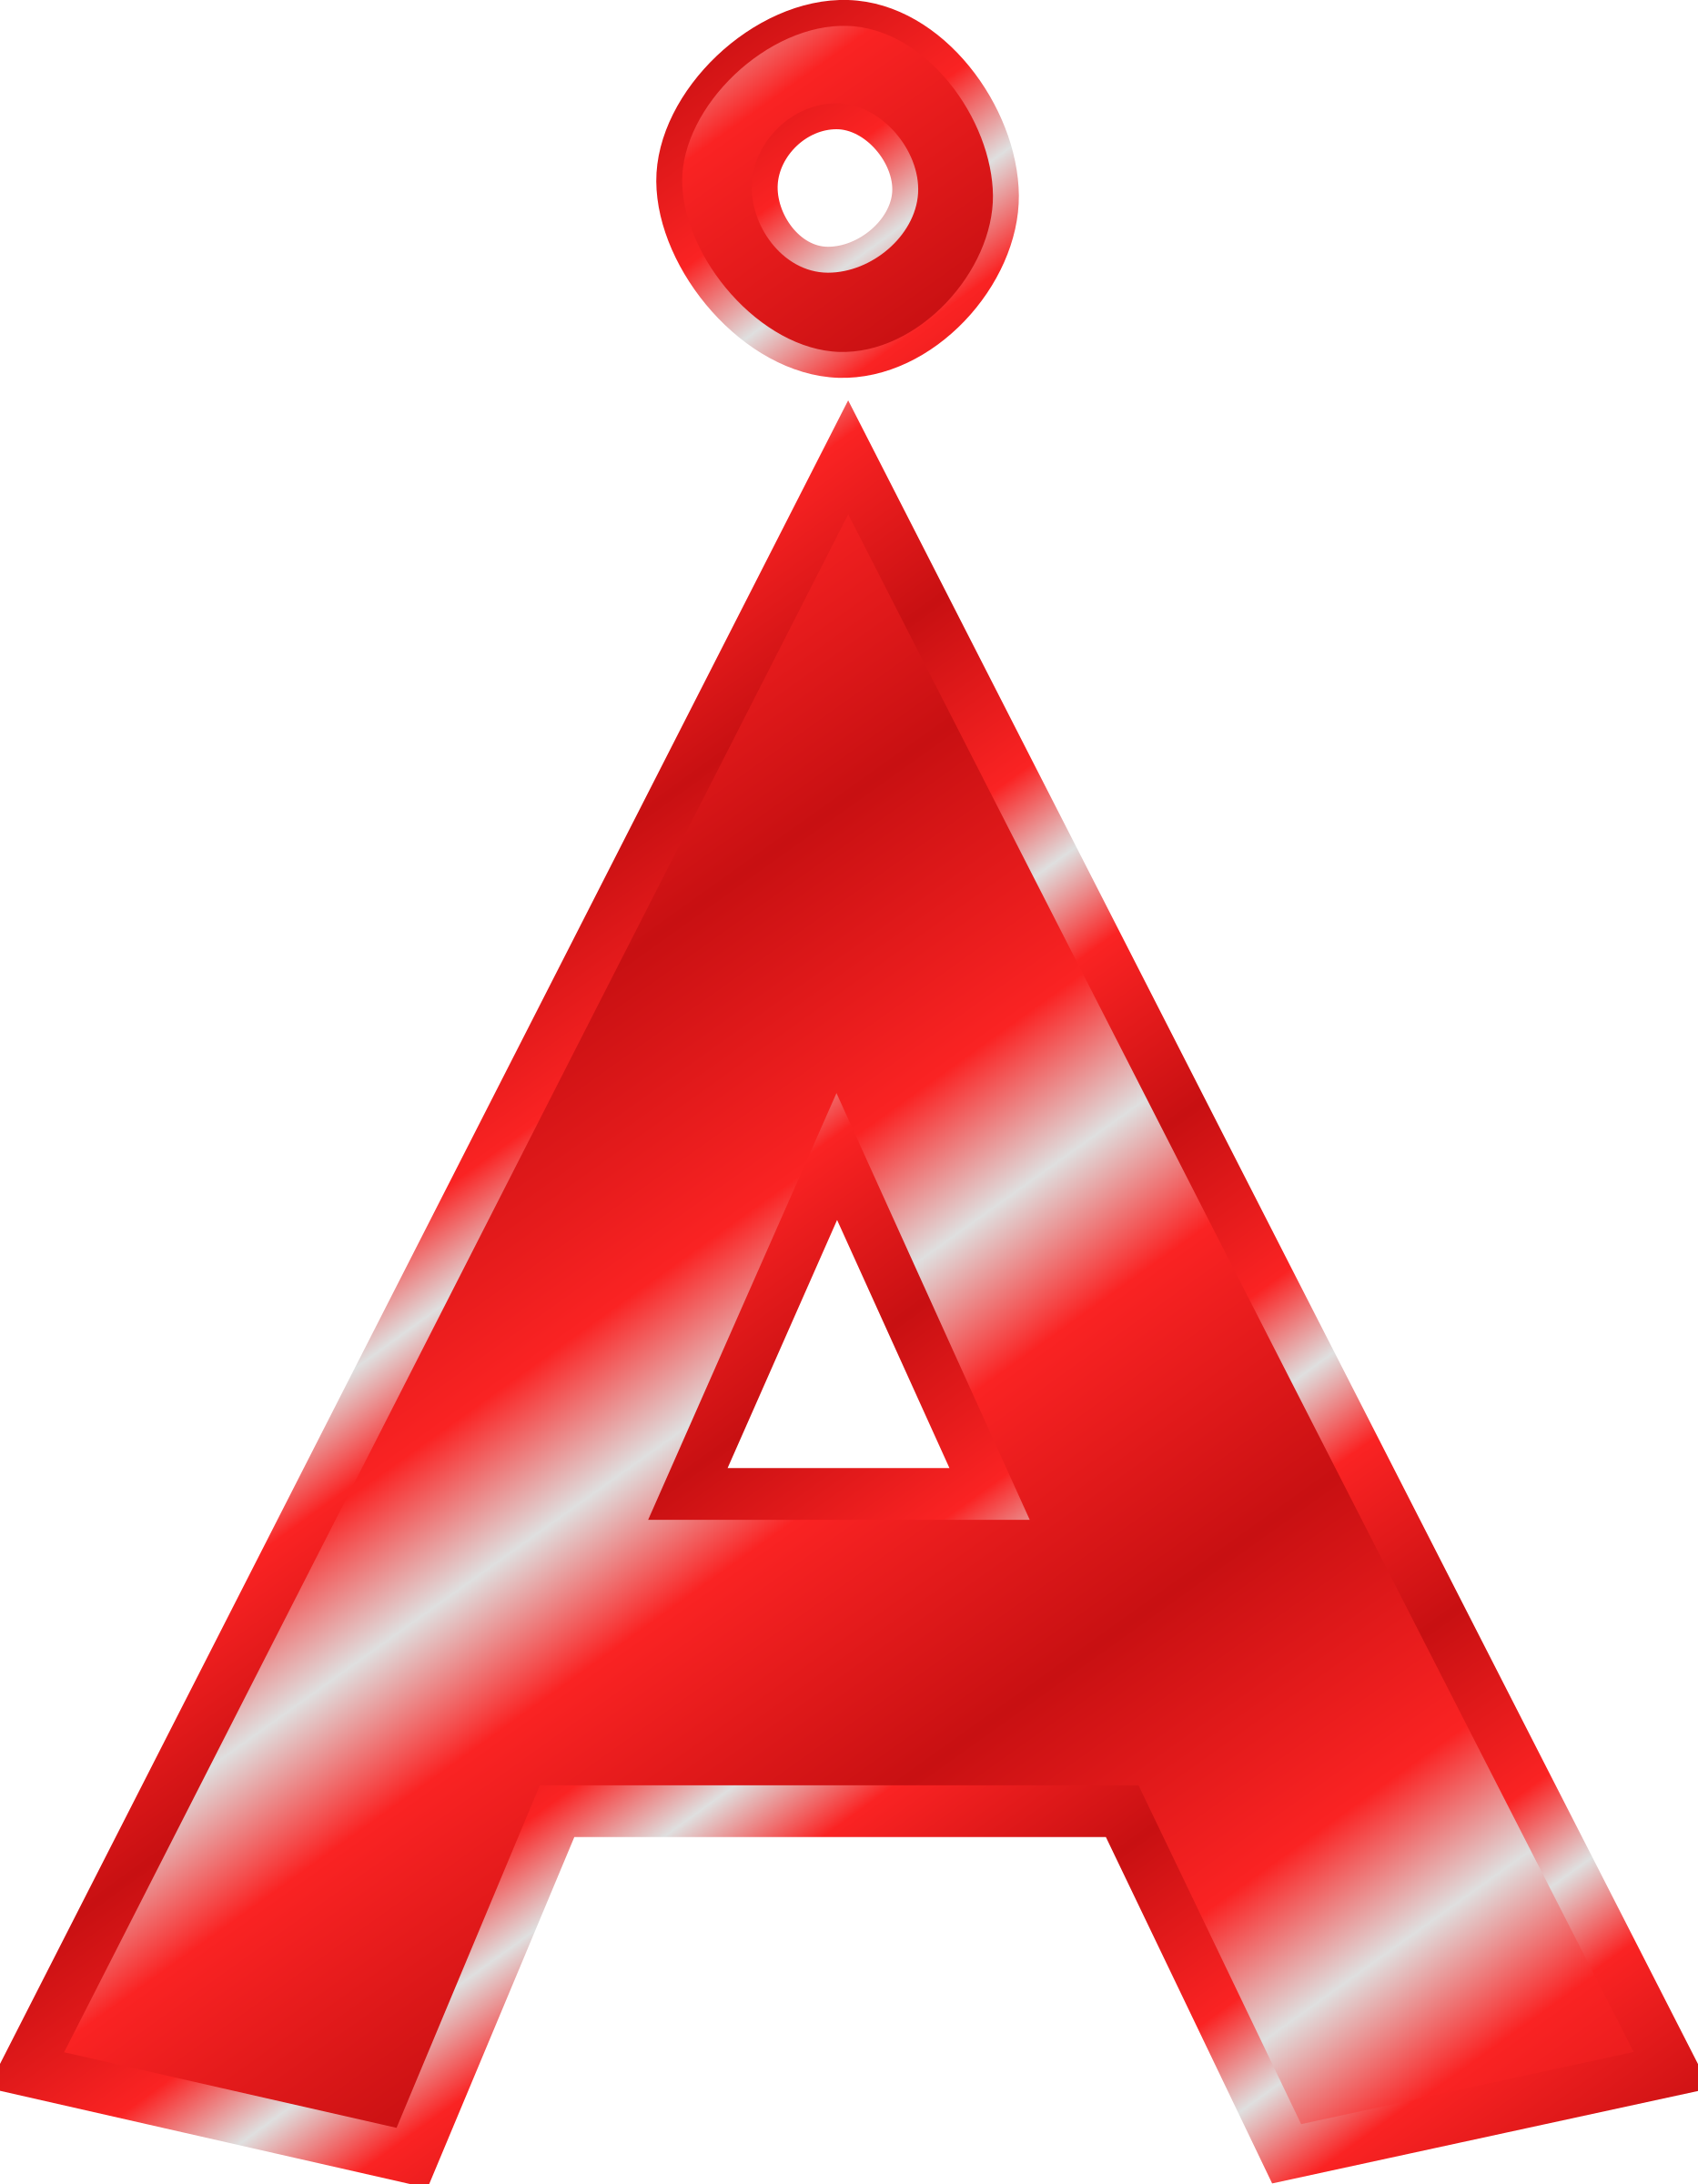 black and white library Letter clipart file. Effect letters alphabet red.